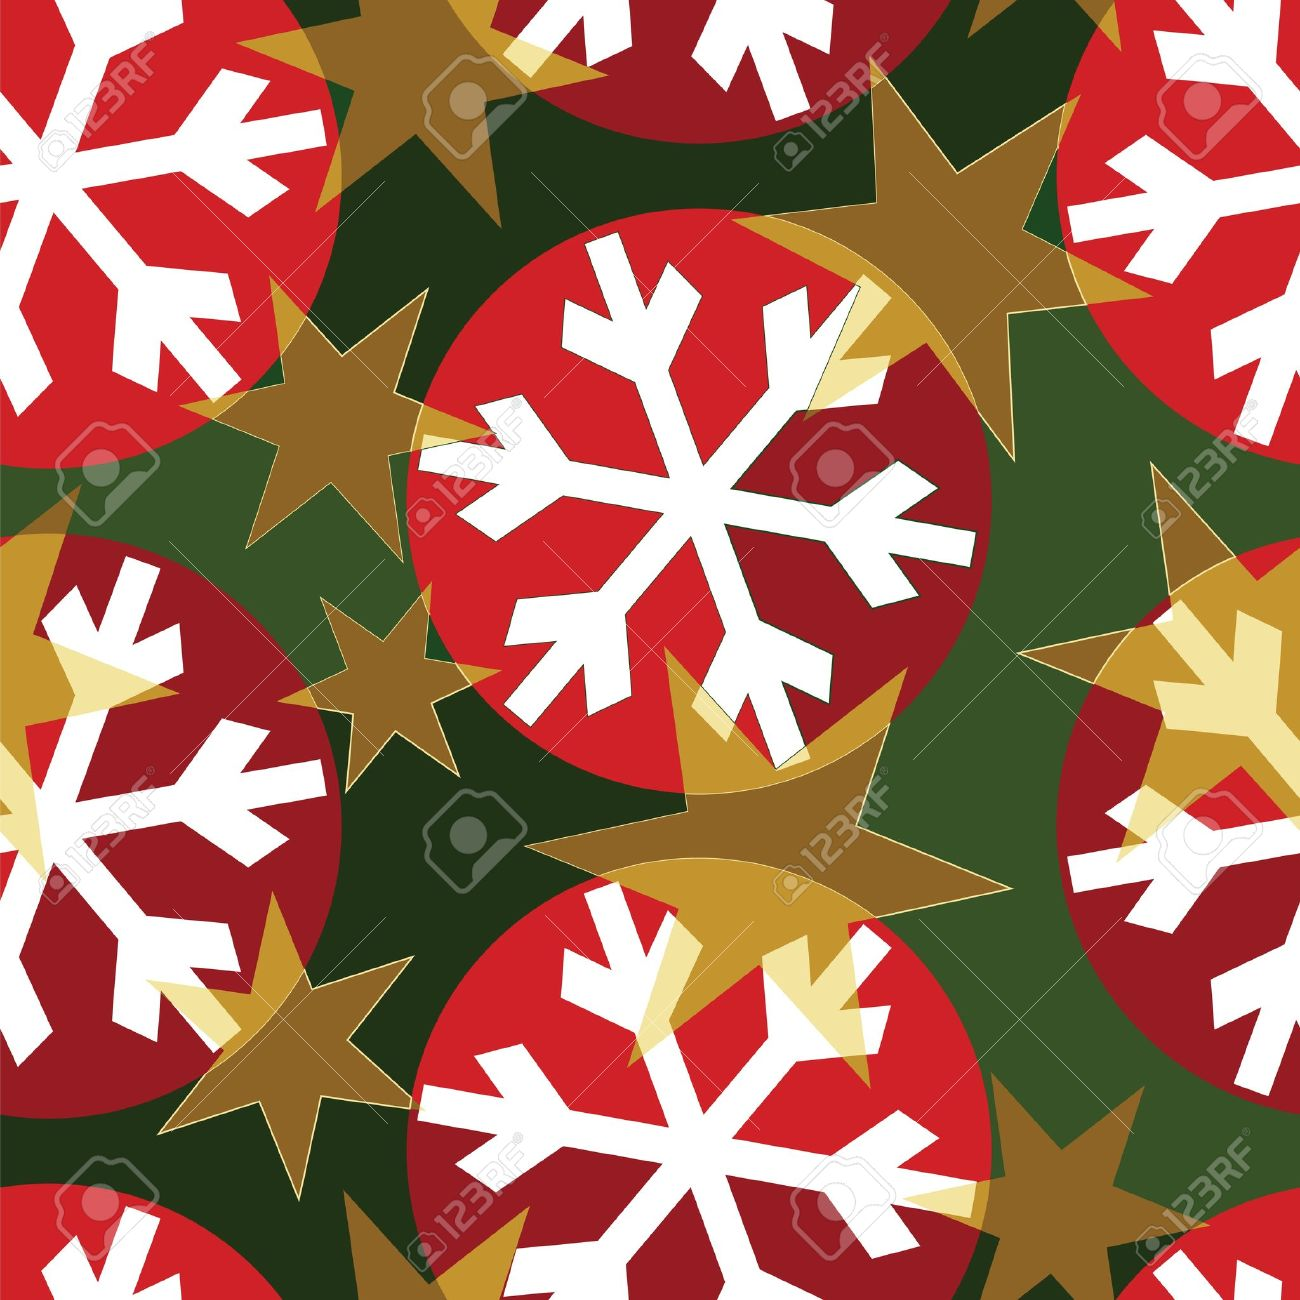 design for christmas wrapping paper royalty free cliparts vectors